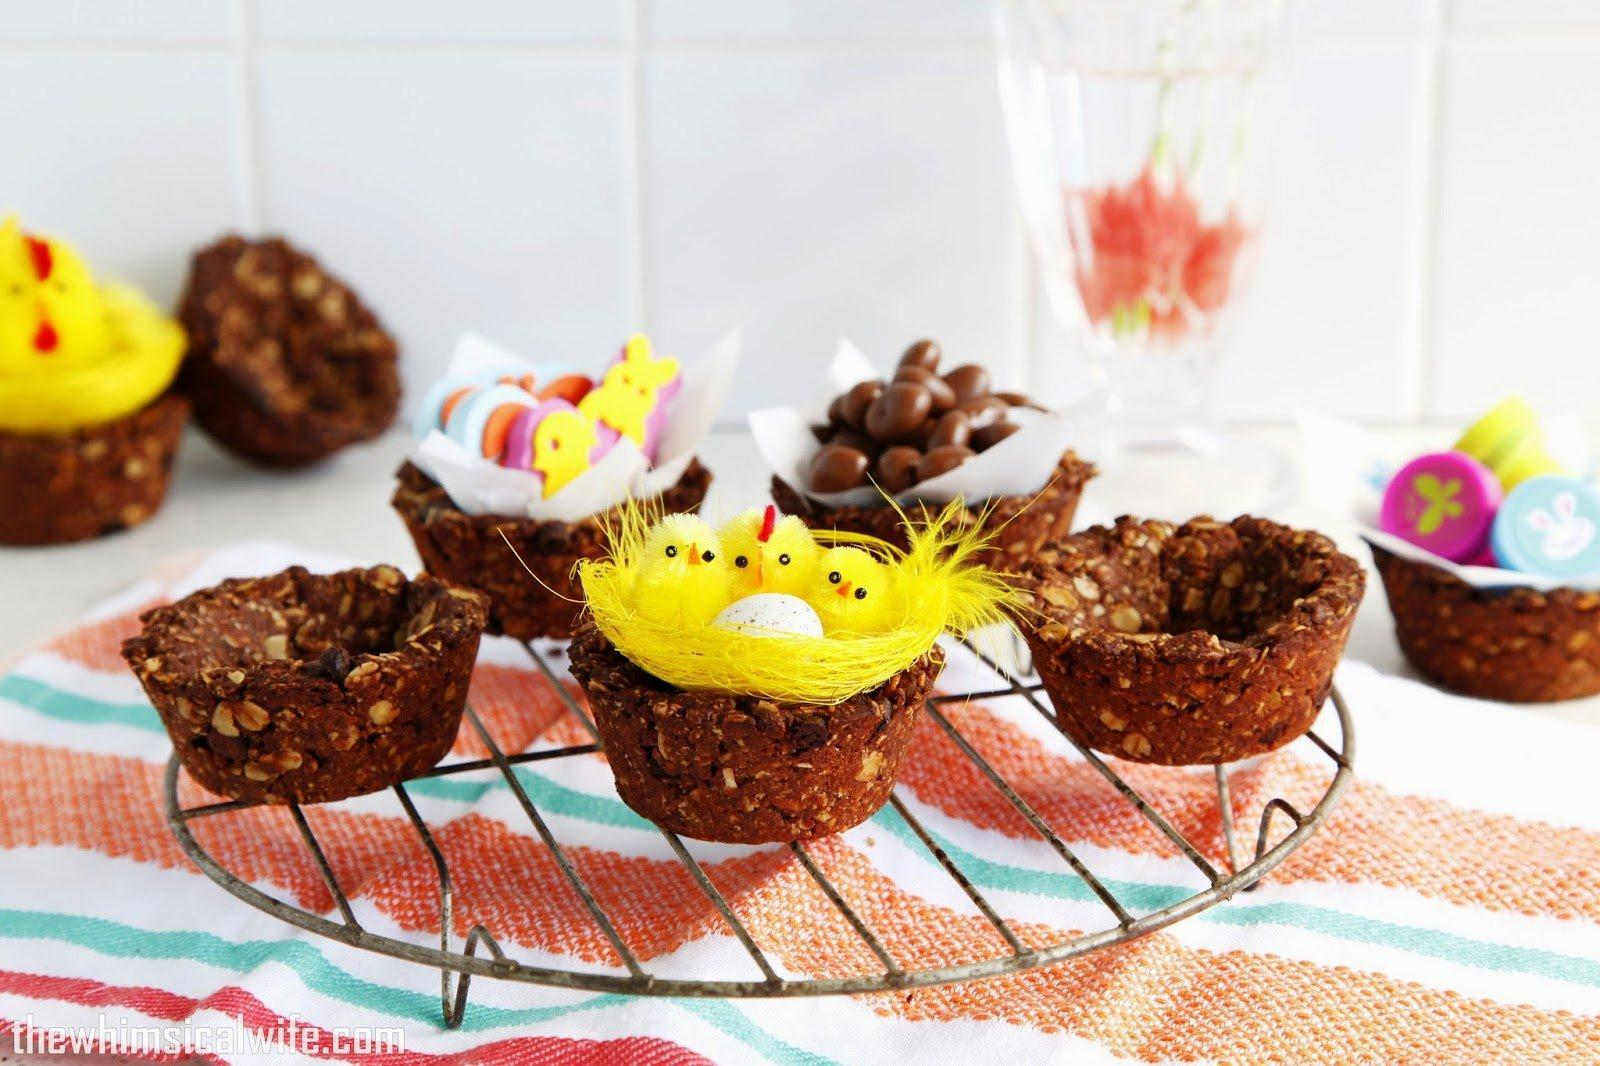 EDIBLE DOUBLE CHOC CHIP & OAT EASTER BASKETS